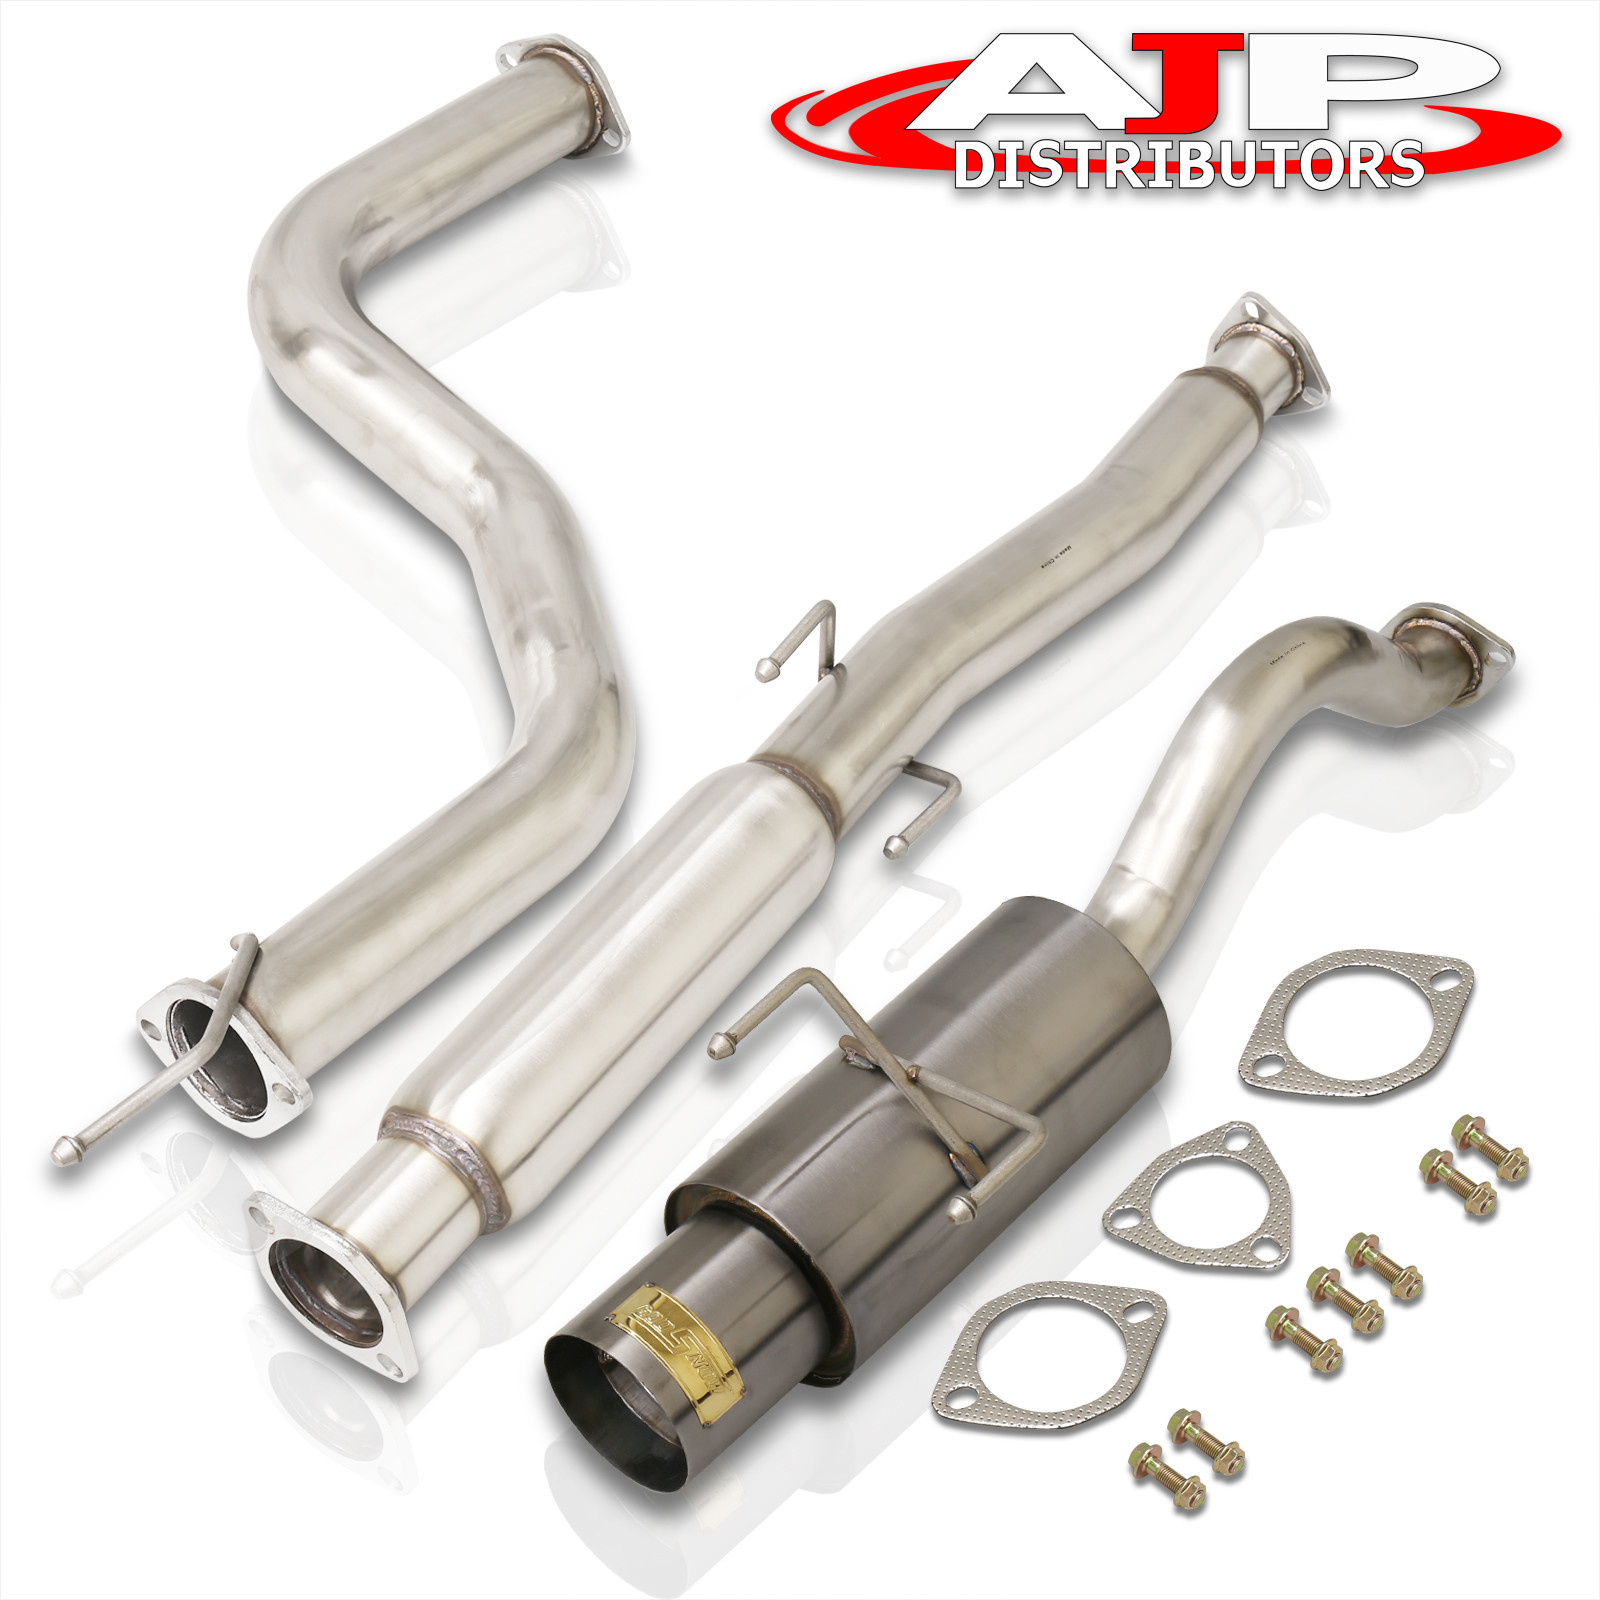 96 97 9800 Honda Civic Hatch Back 3dr Ek 3 N1 Gunmetal Catback Exhaust System Ebay: 98 Honda Civic Dx Exhaust System At Woreks.co